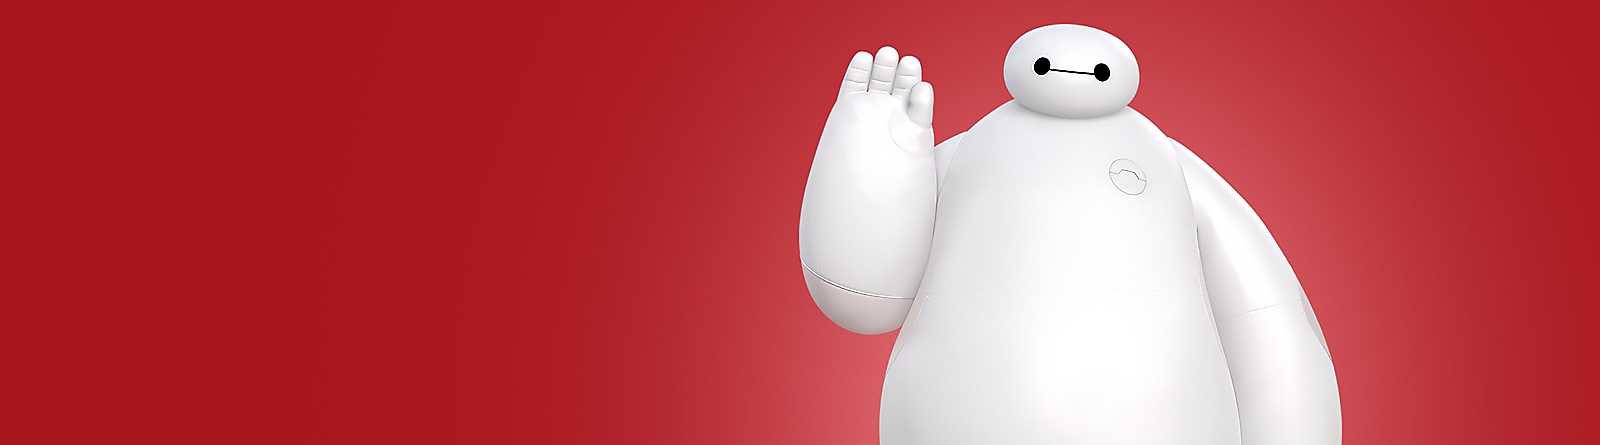 Background image of Baymax